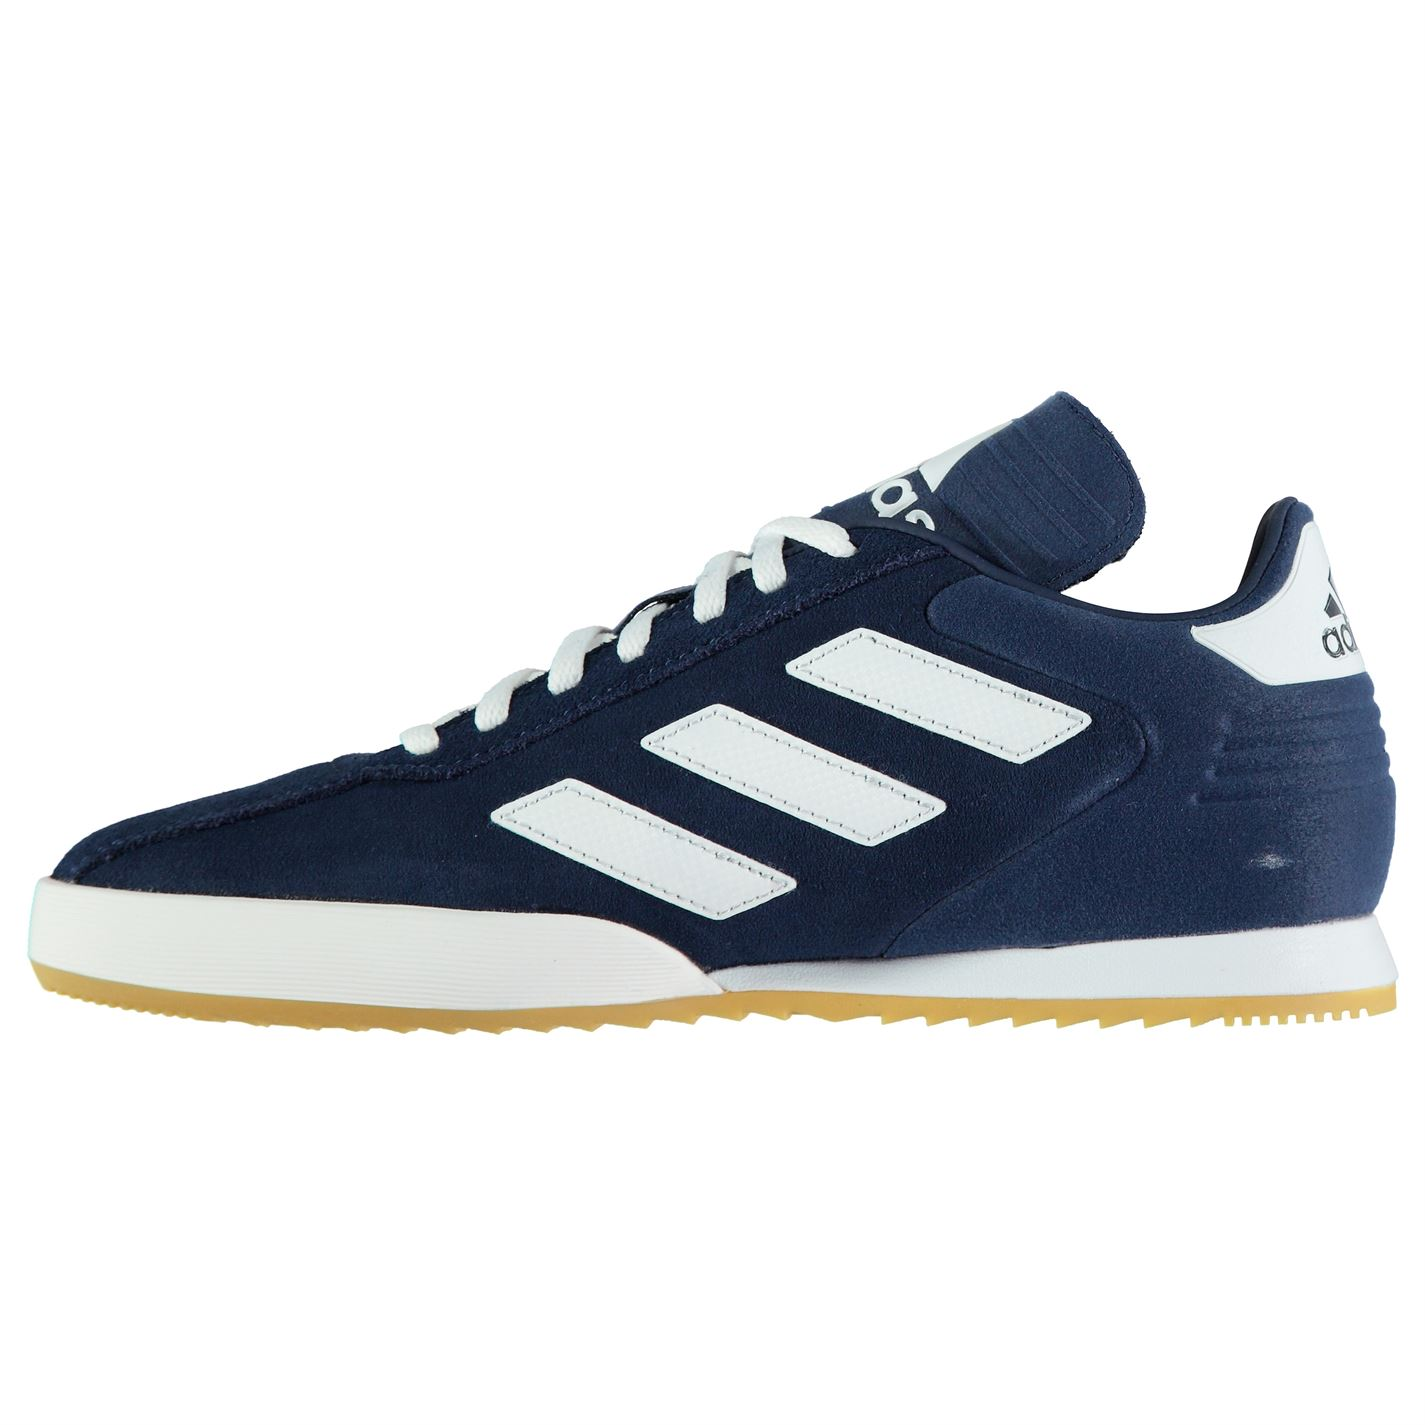 Details about adidas Mens Copa Super Suede Low Trainers Lace Up Sports Shoes Cushioned Insole